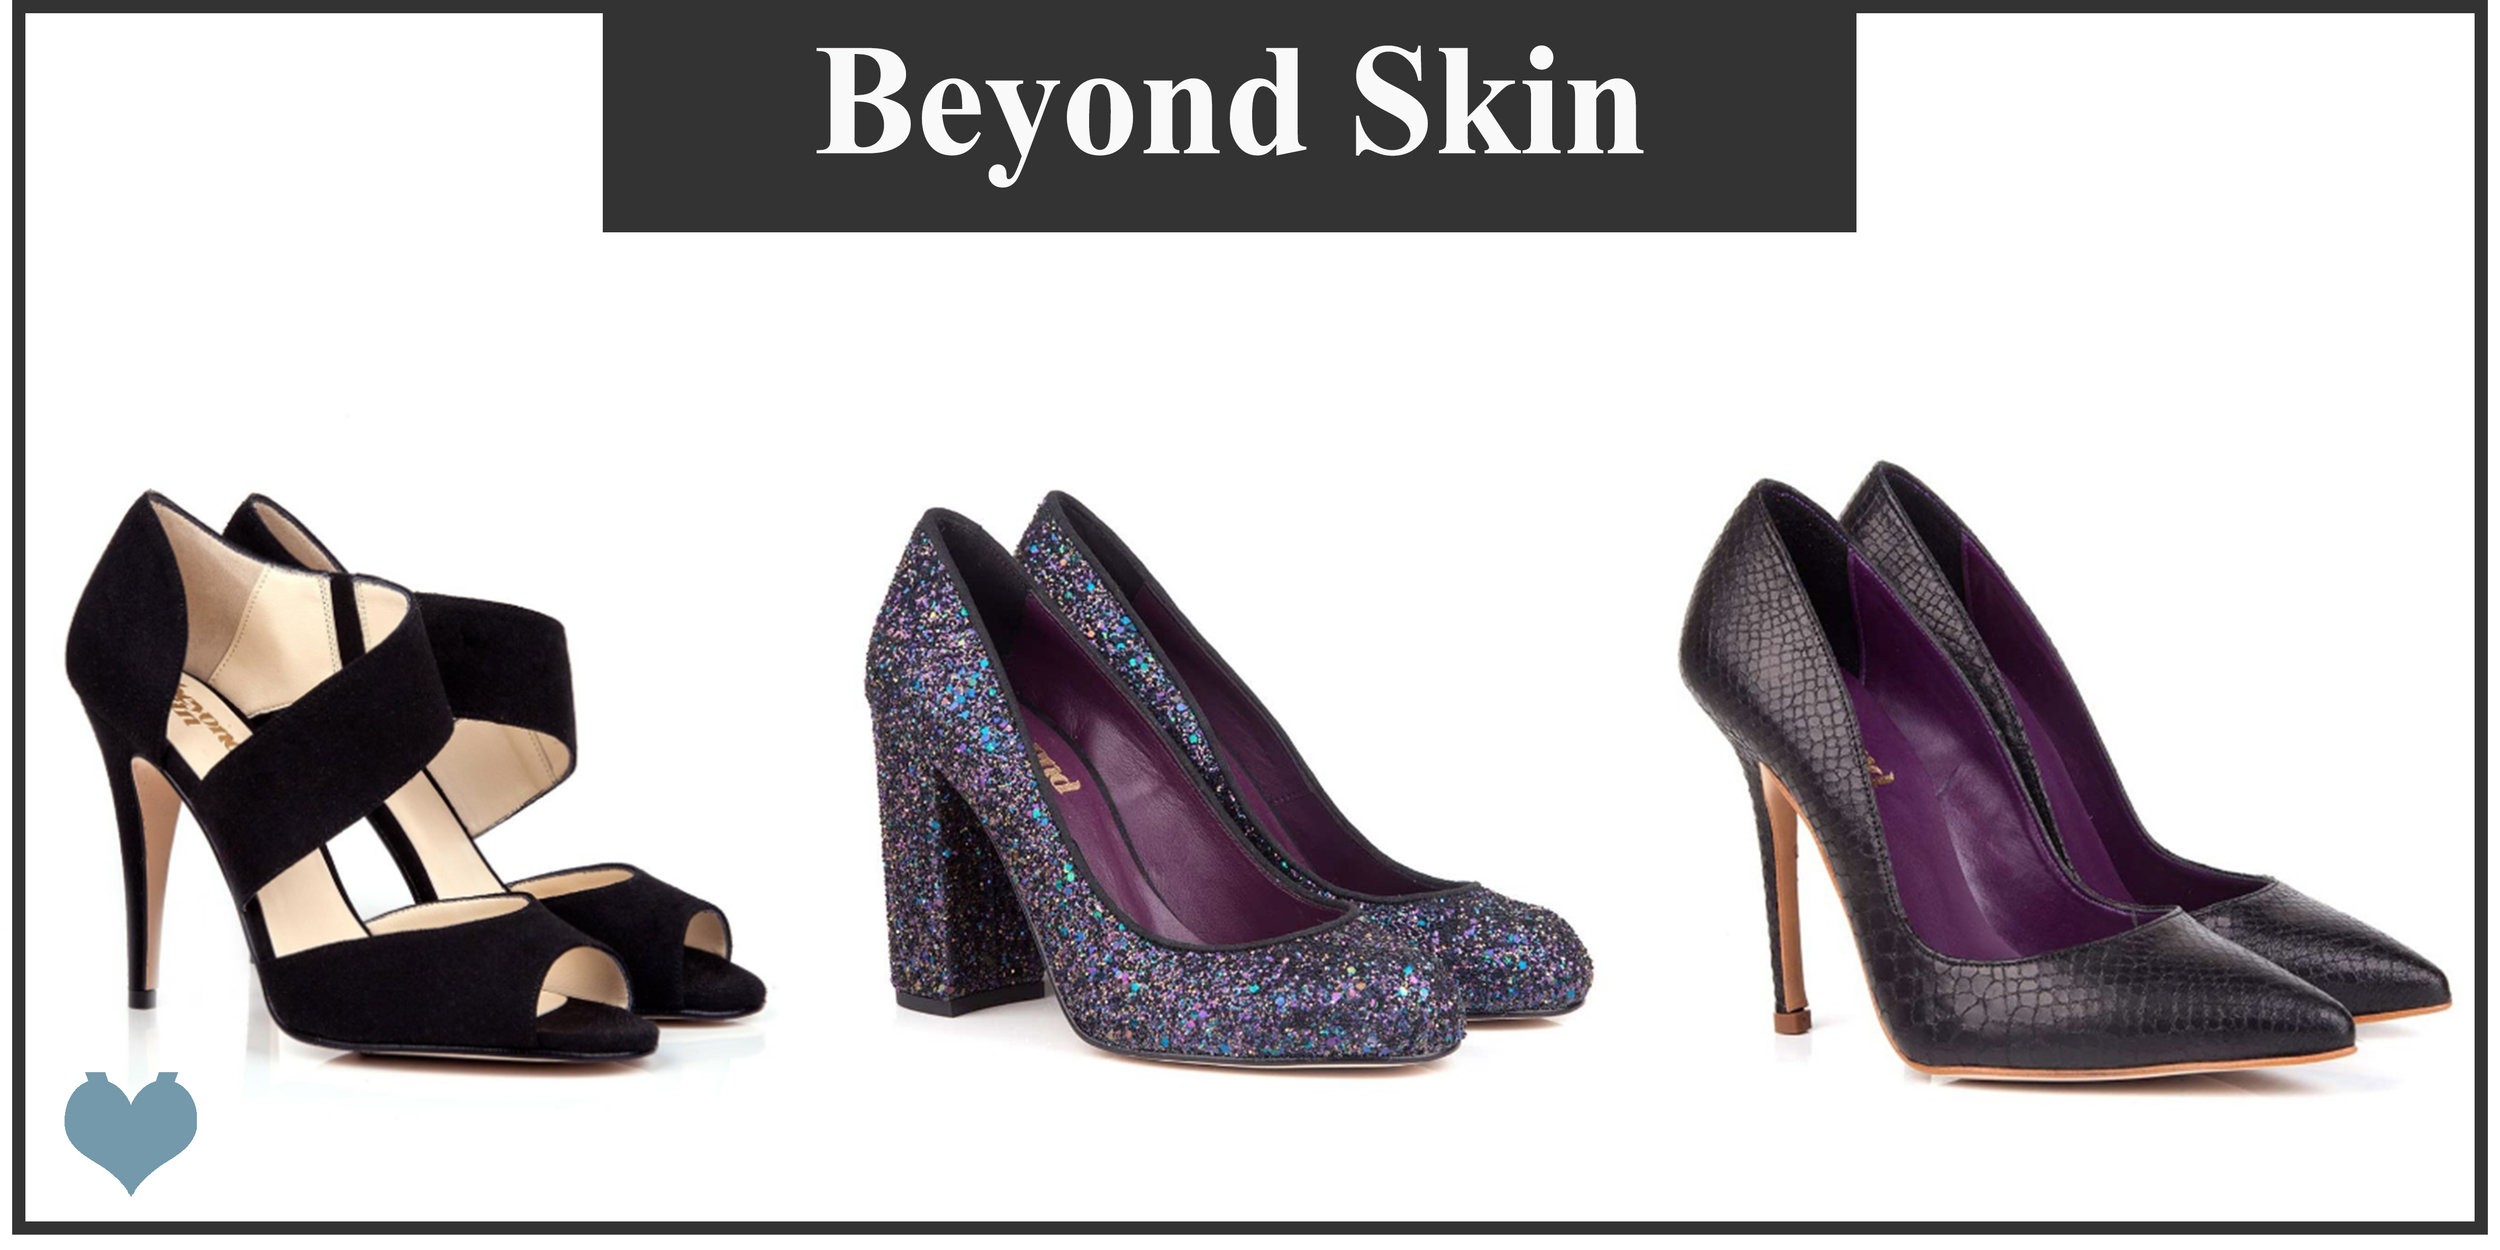 Beyond skin shoes.jpg